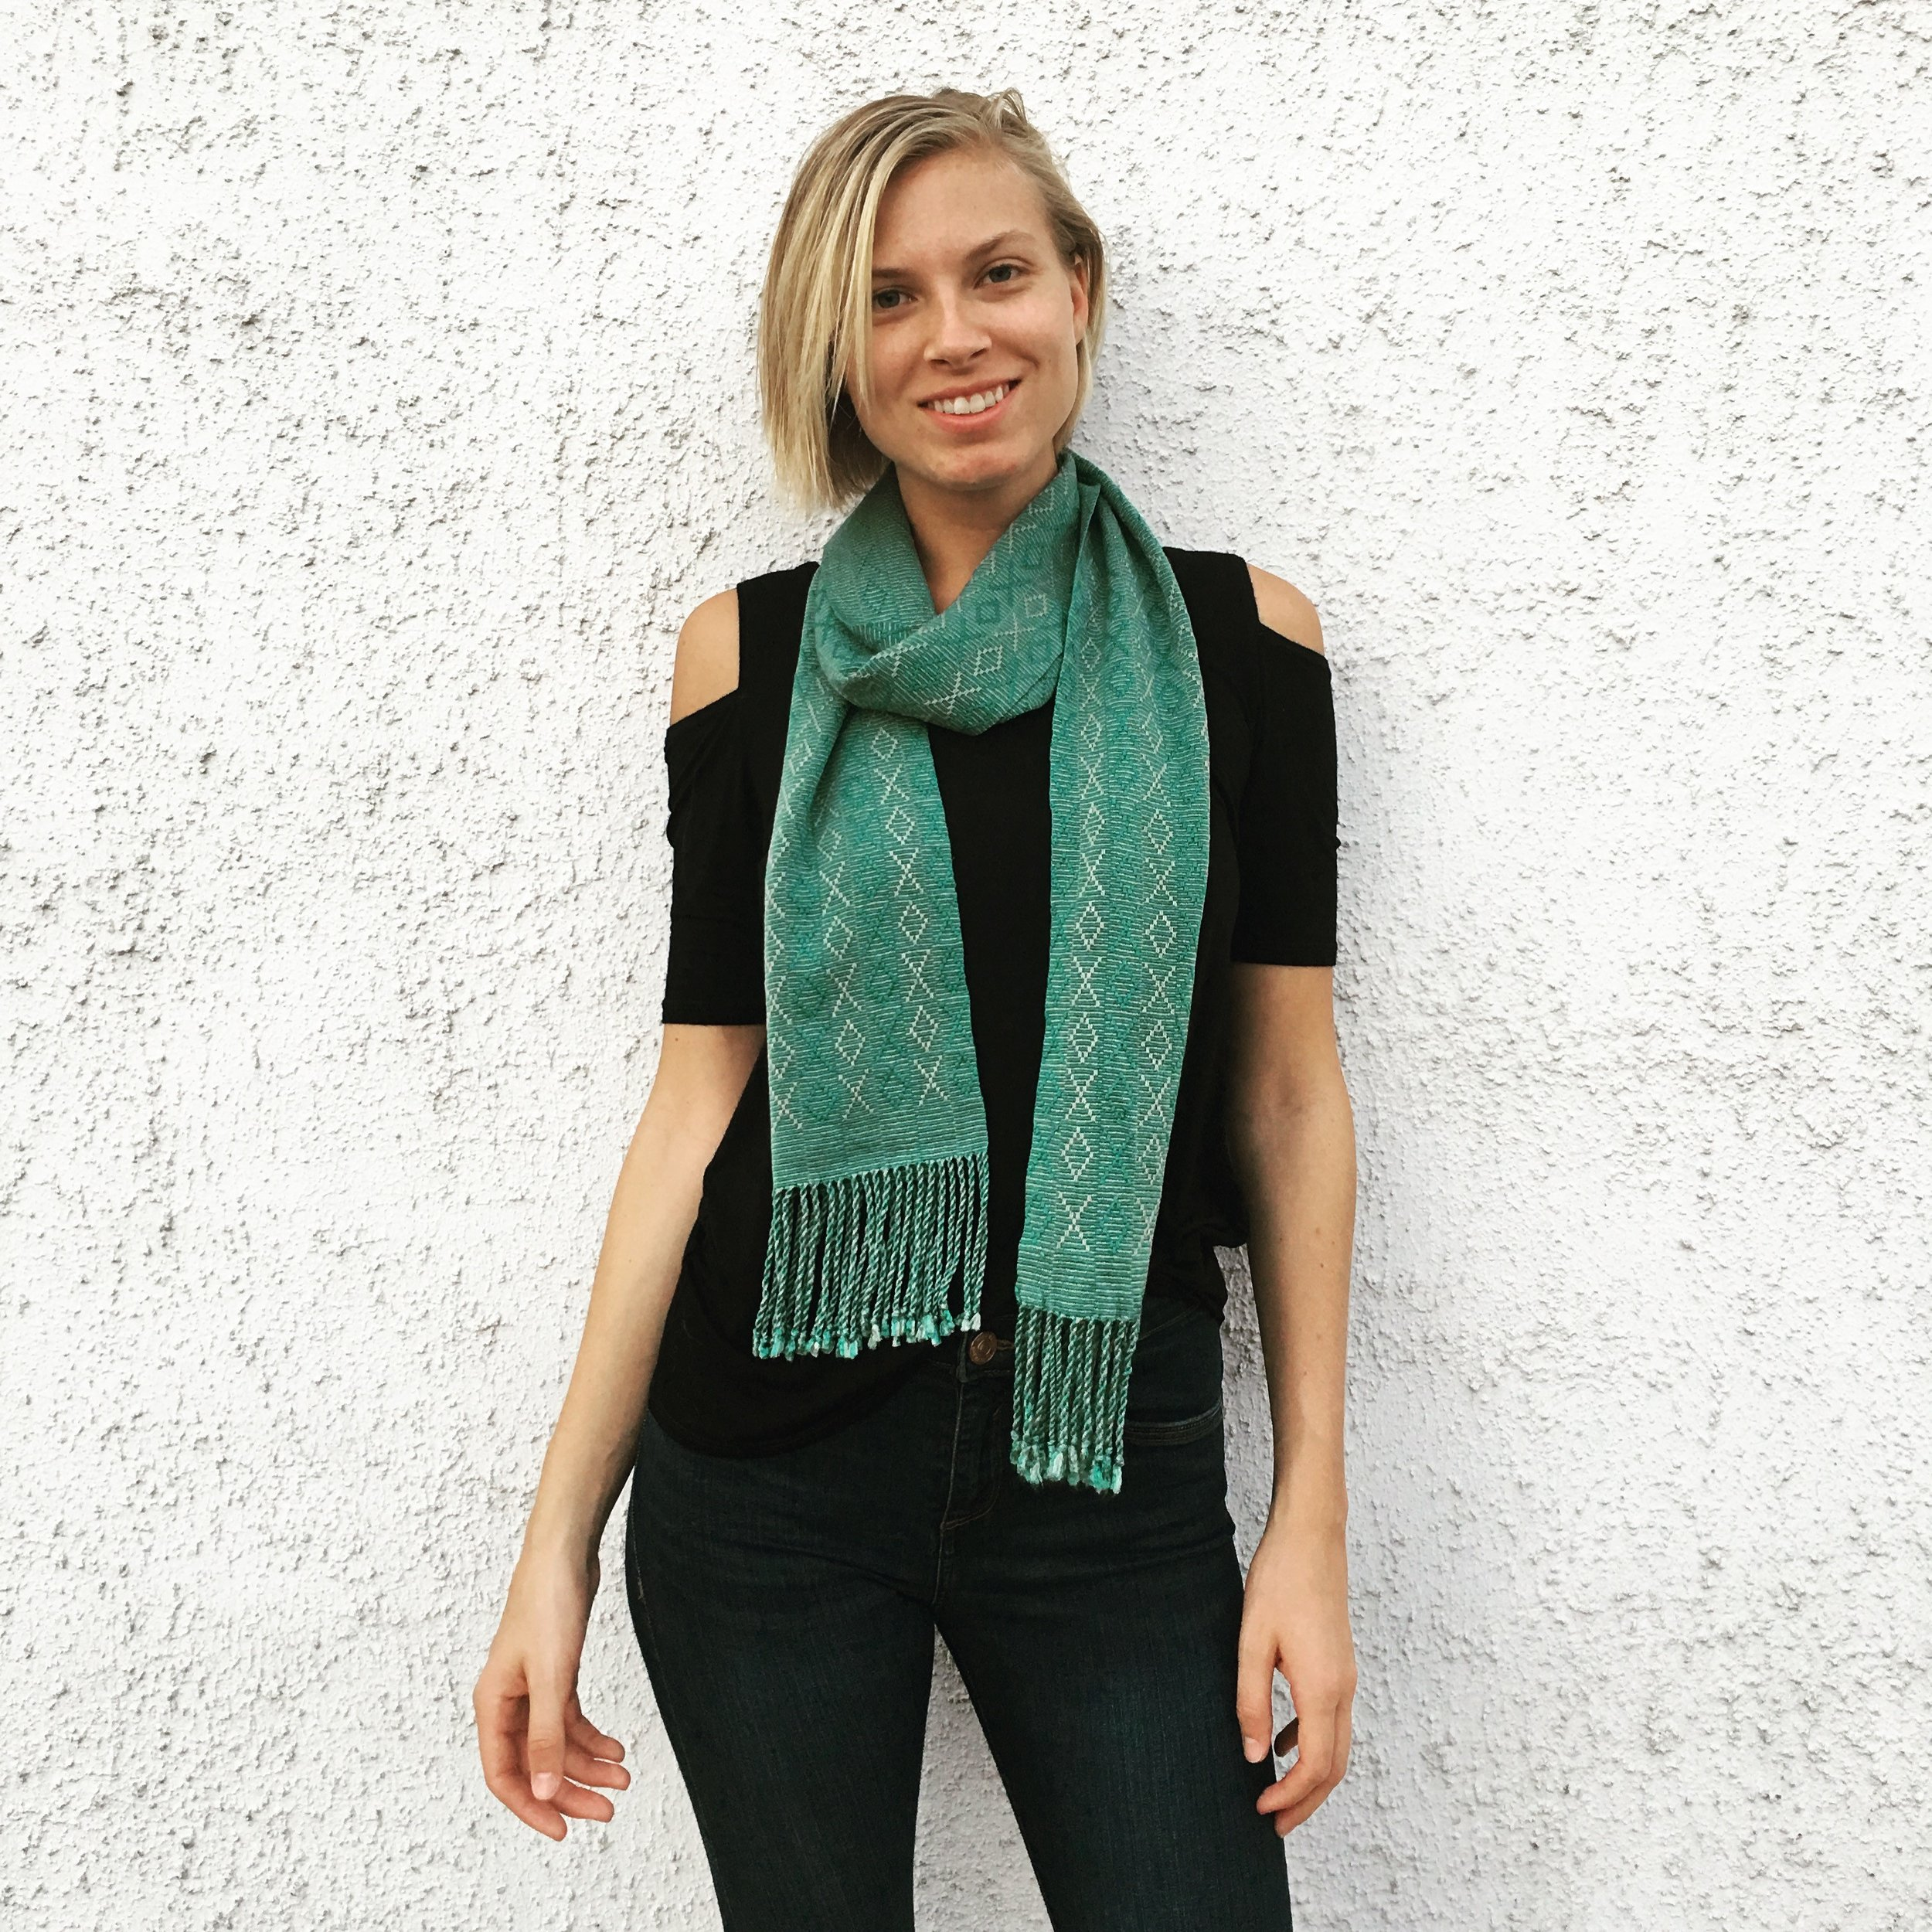 Shop Now - Each scarf is one-of-a-kind so get yours before they are gone!